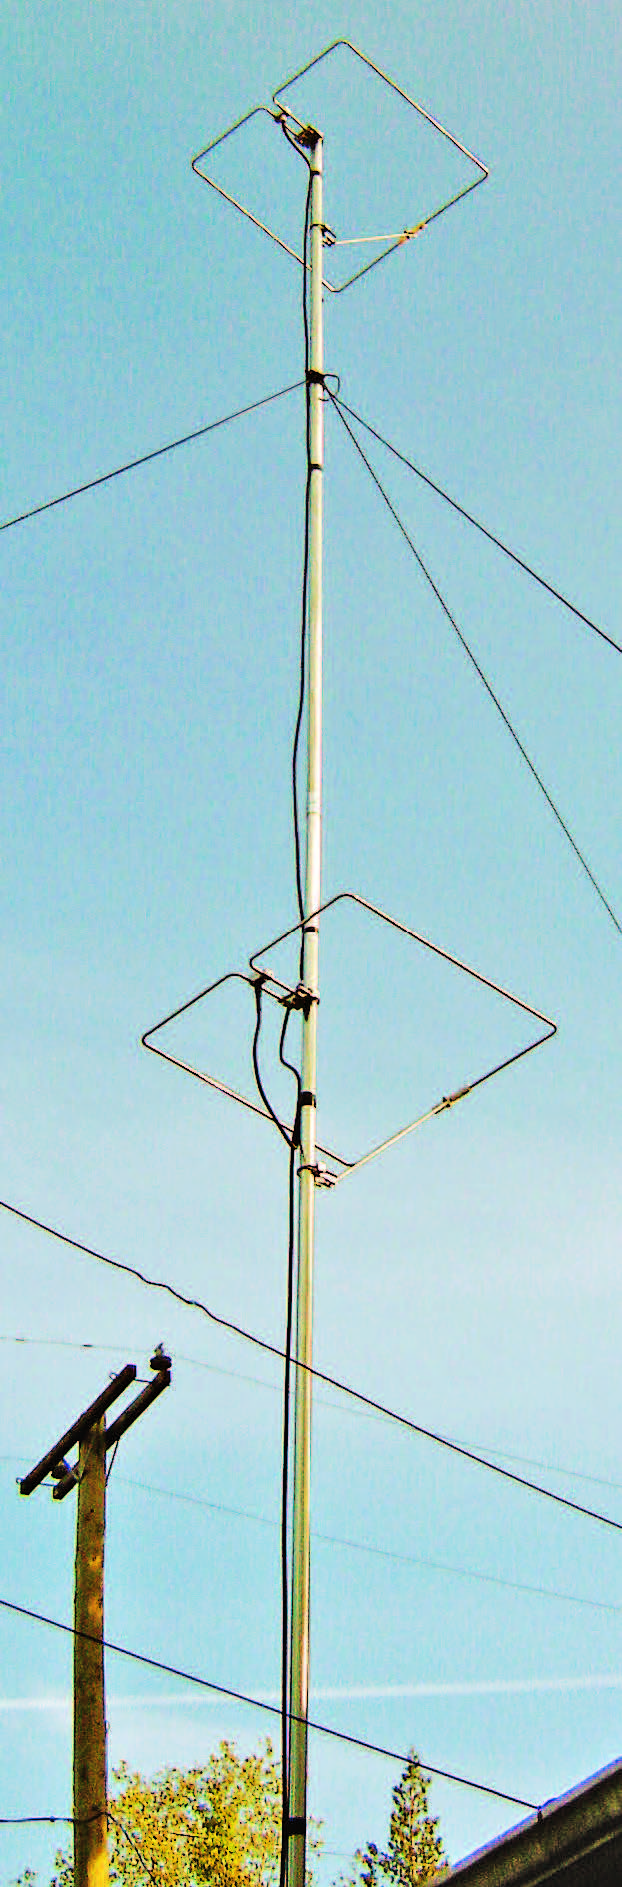 ARRL Product Review of the M2 6-Meter HO Loop Antennas - M2 Antenna